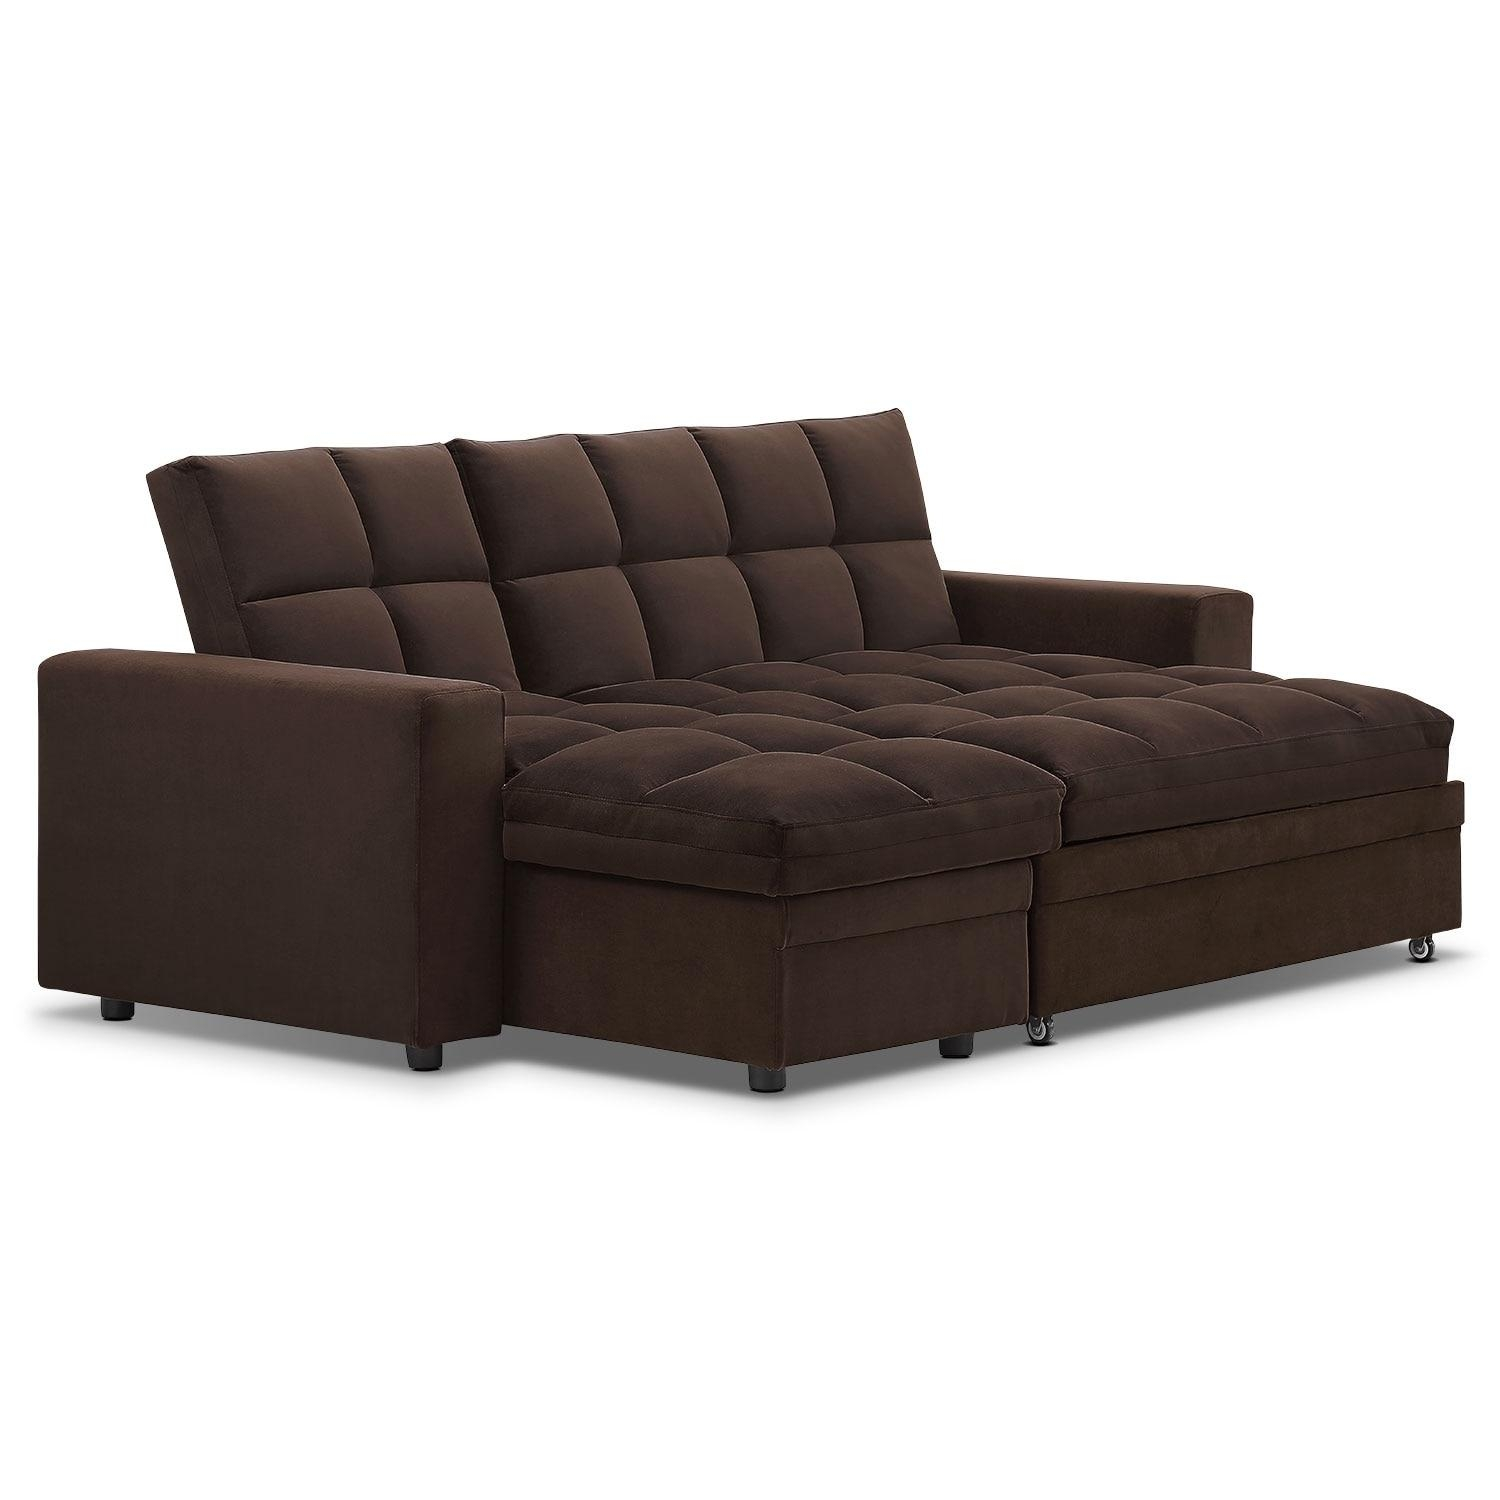 value city furniture marco chaise sofa motorhome bed 20 collection of chairs ideas